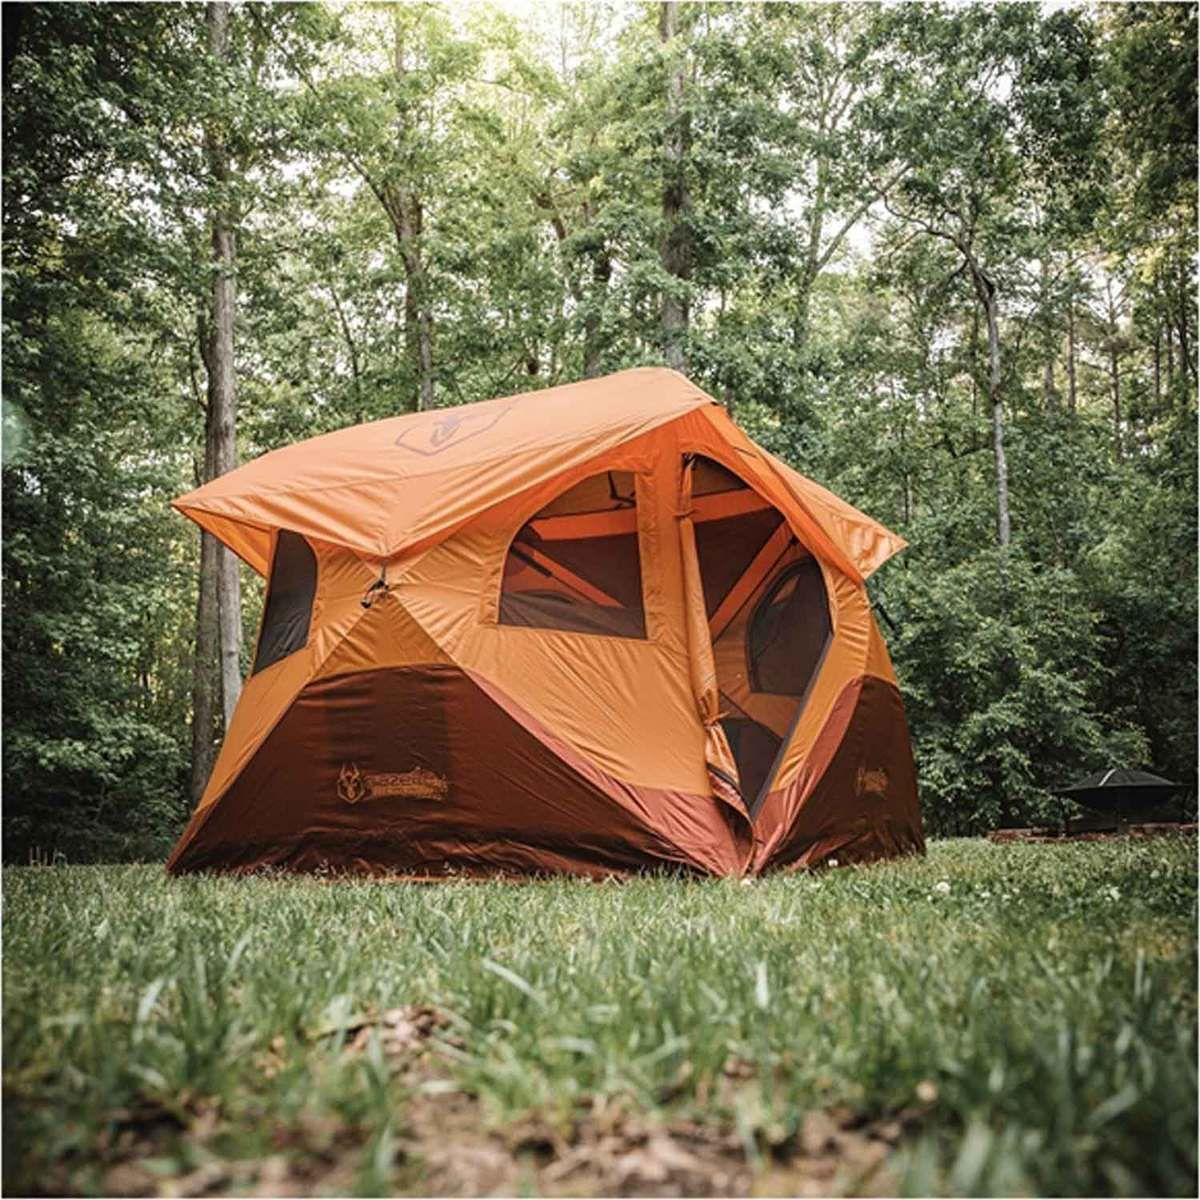 Gazelle T4 Overland 4 Person Camping Tent In 2021 4 Person Camping Tent Tent Bell Tent